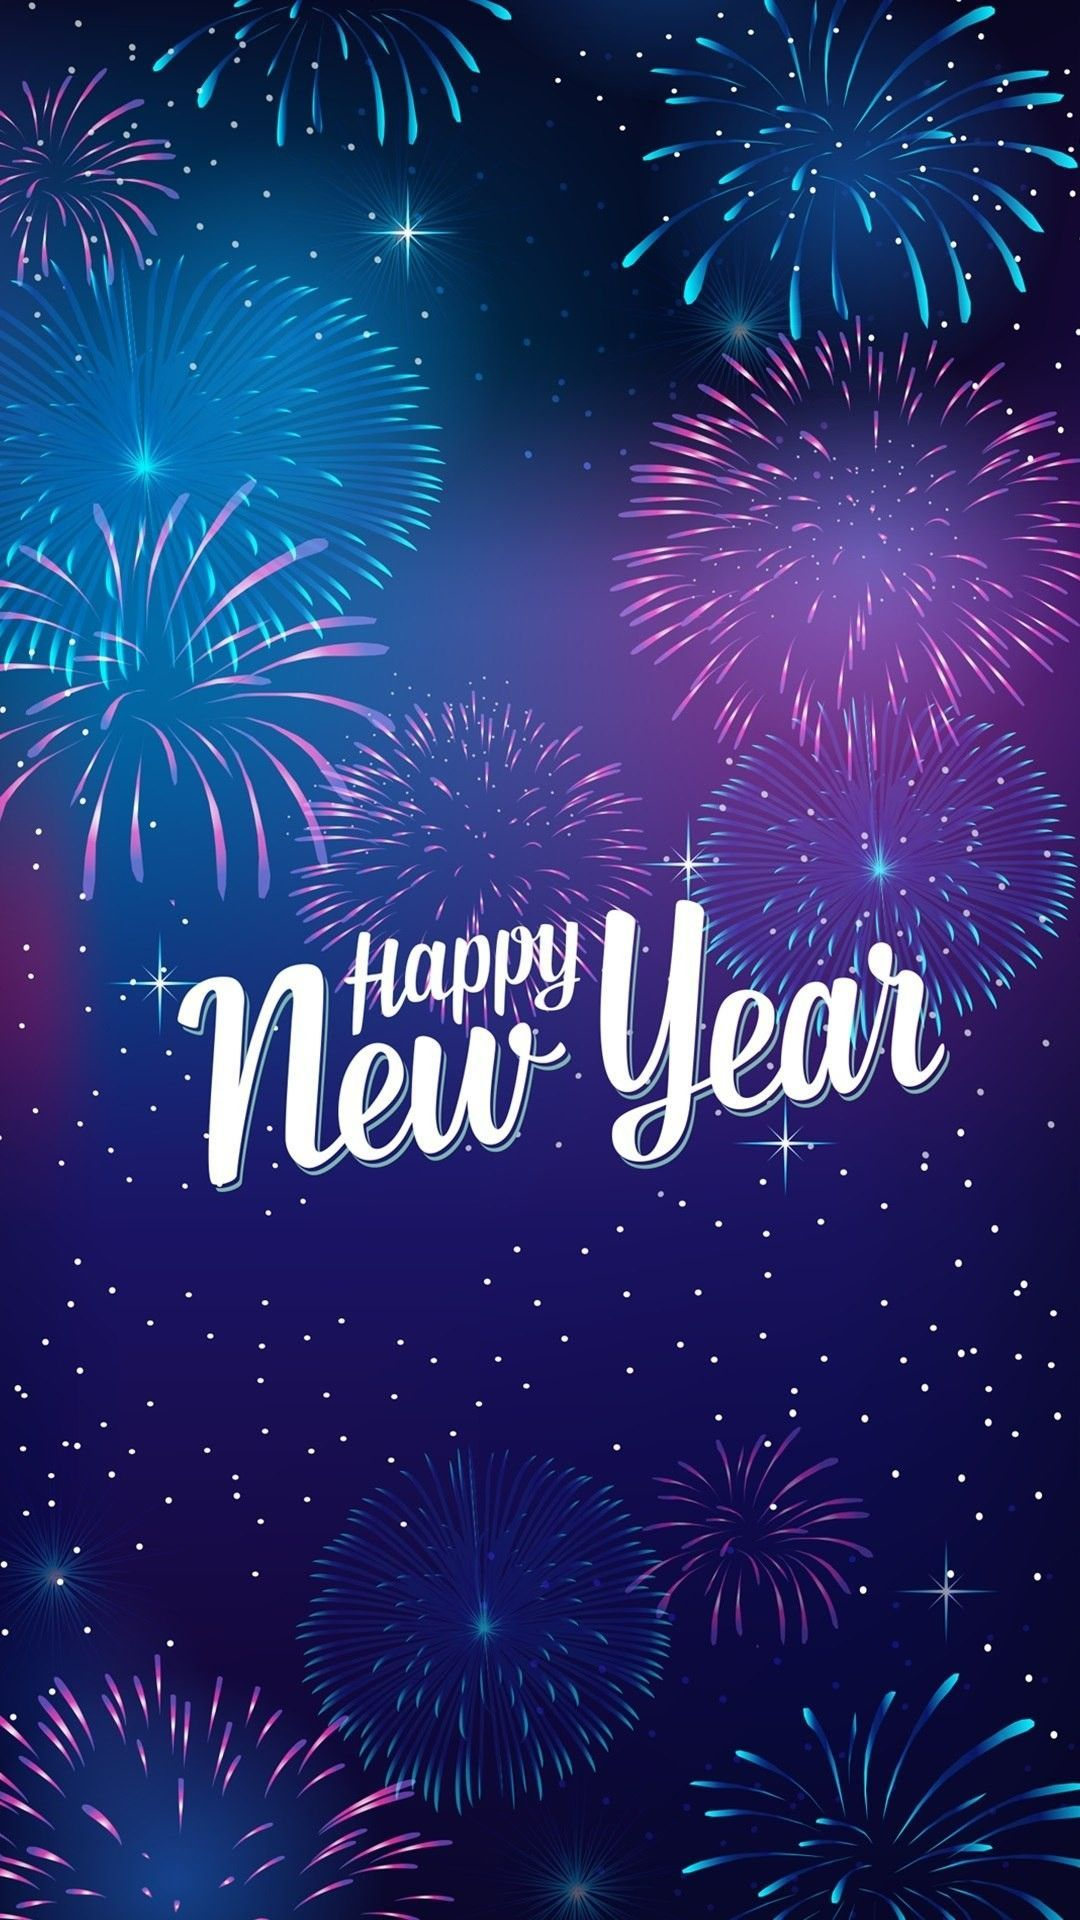 1080x1920 Iphone New Year   Phone backgrounds   Happy new year ...